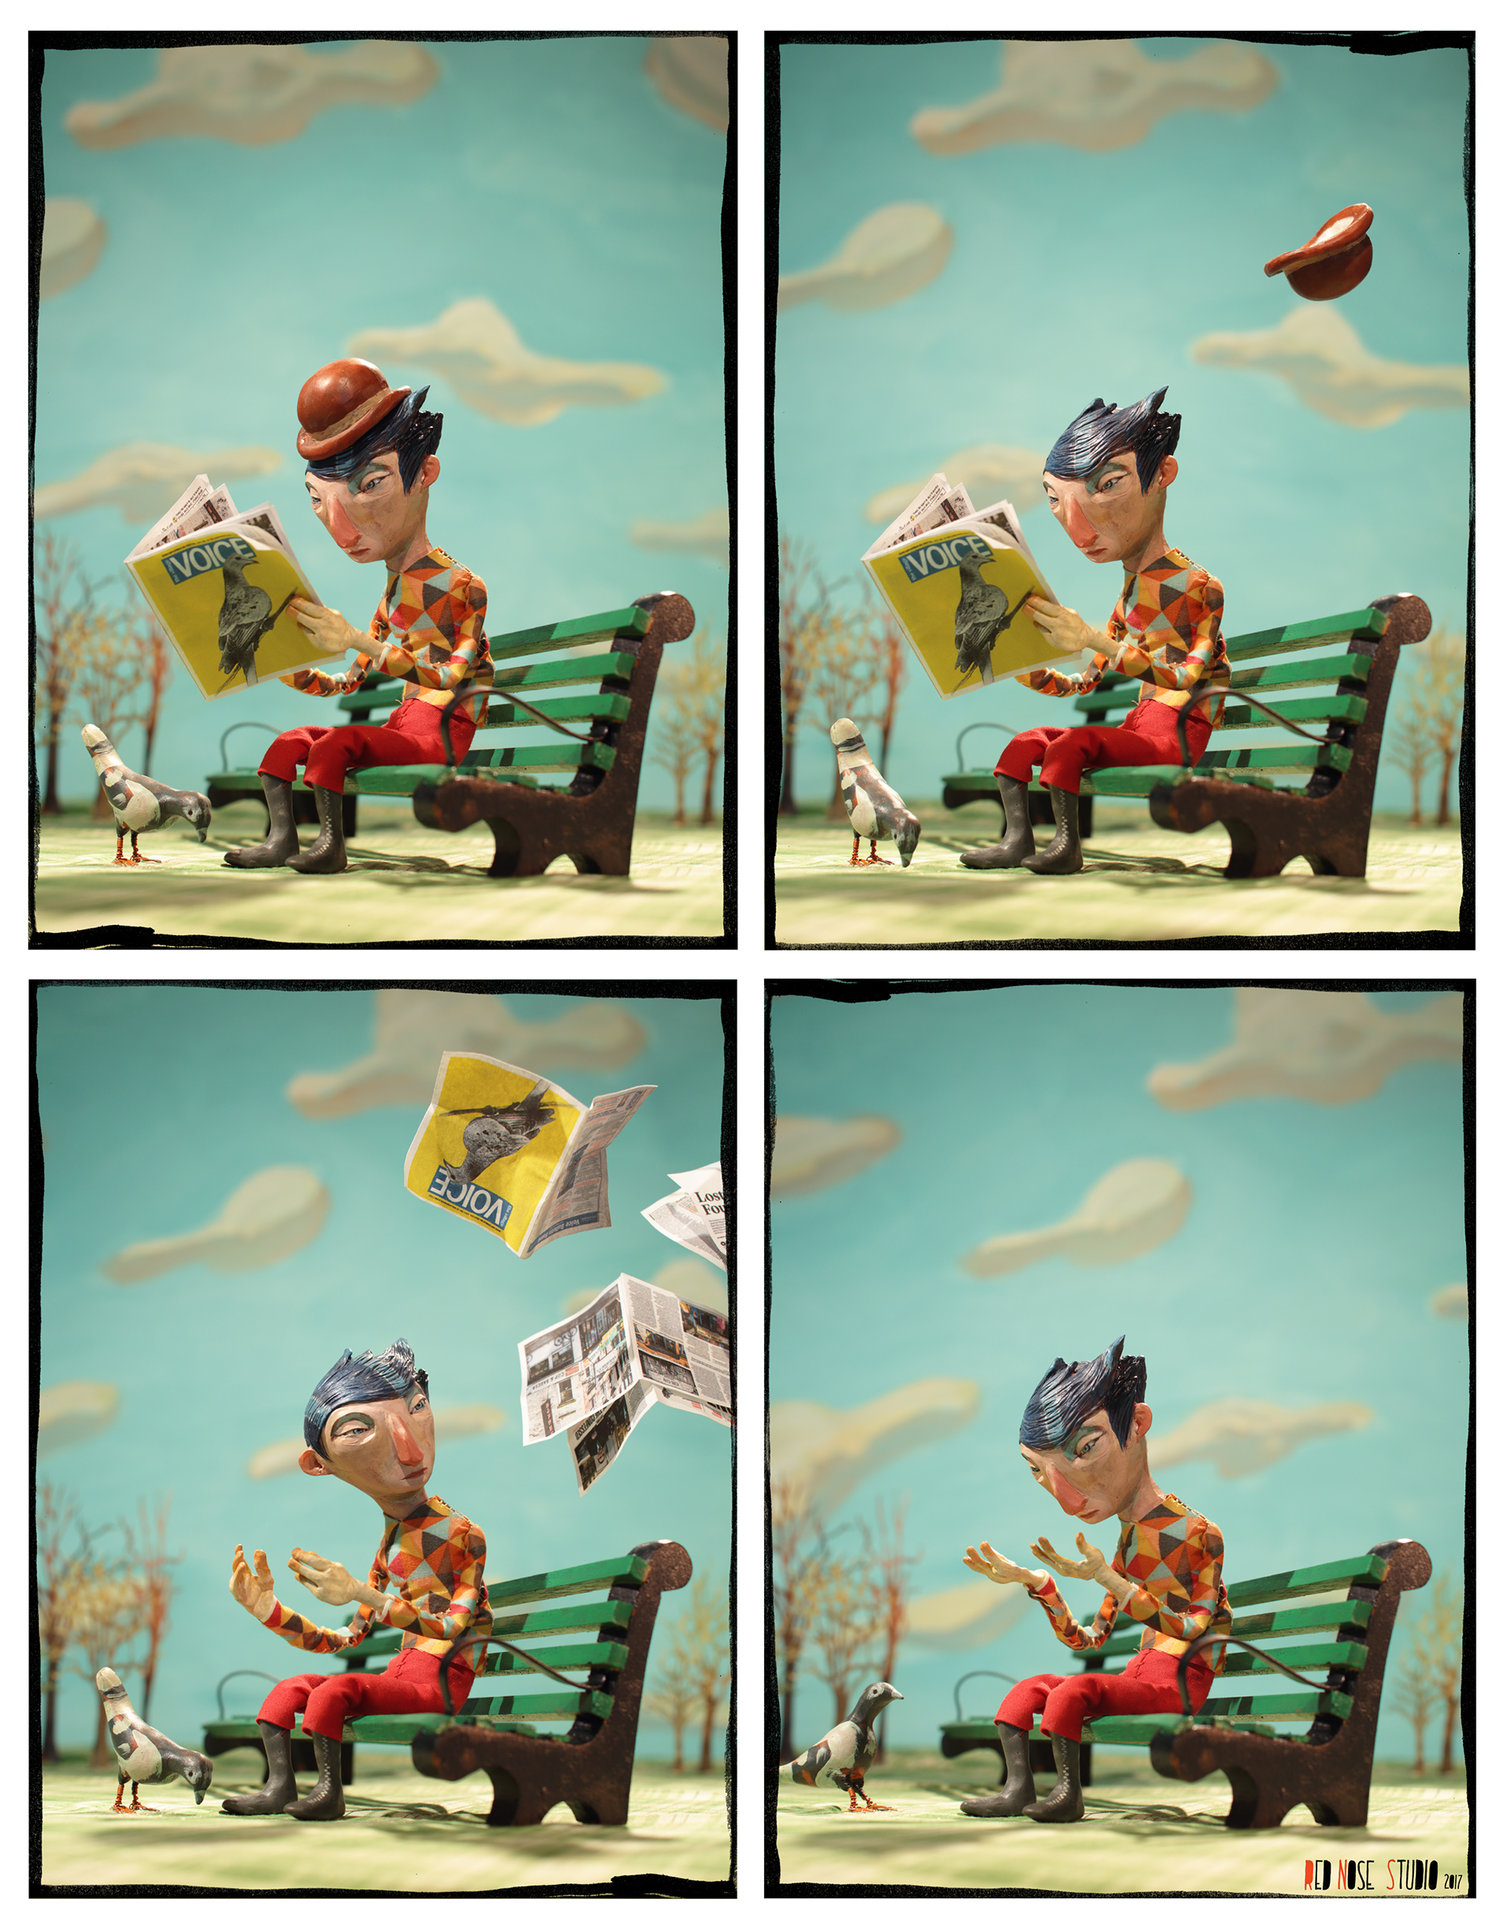 Chris Sickels of Red Nose Studio Animation